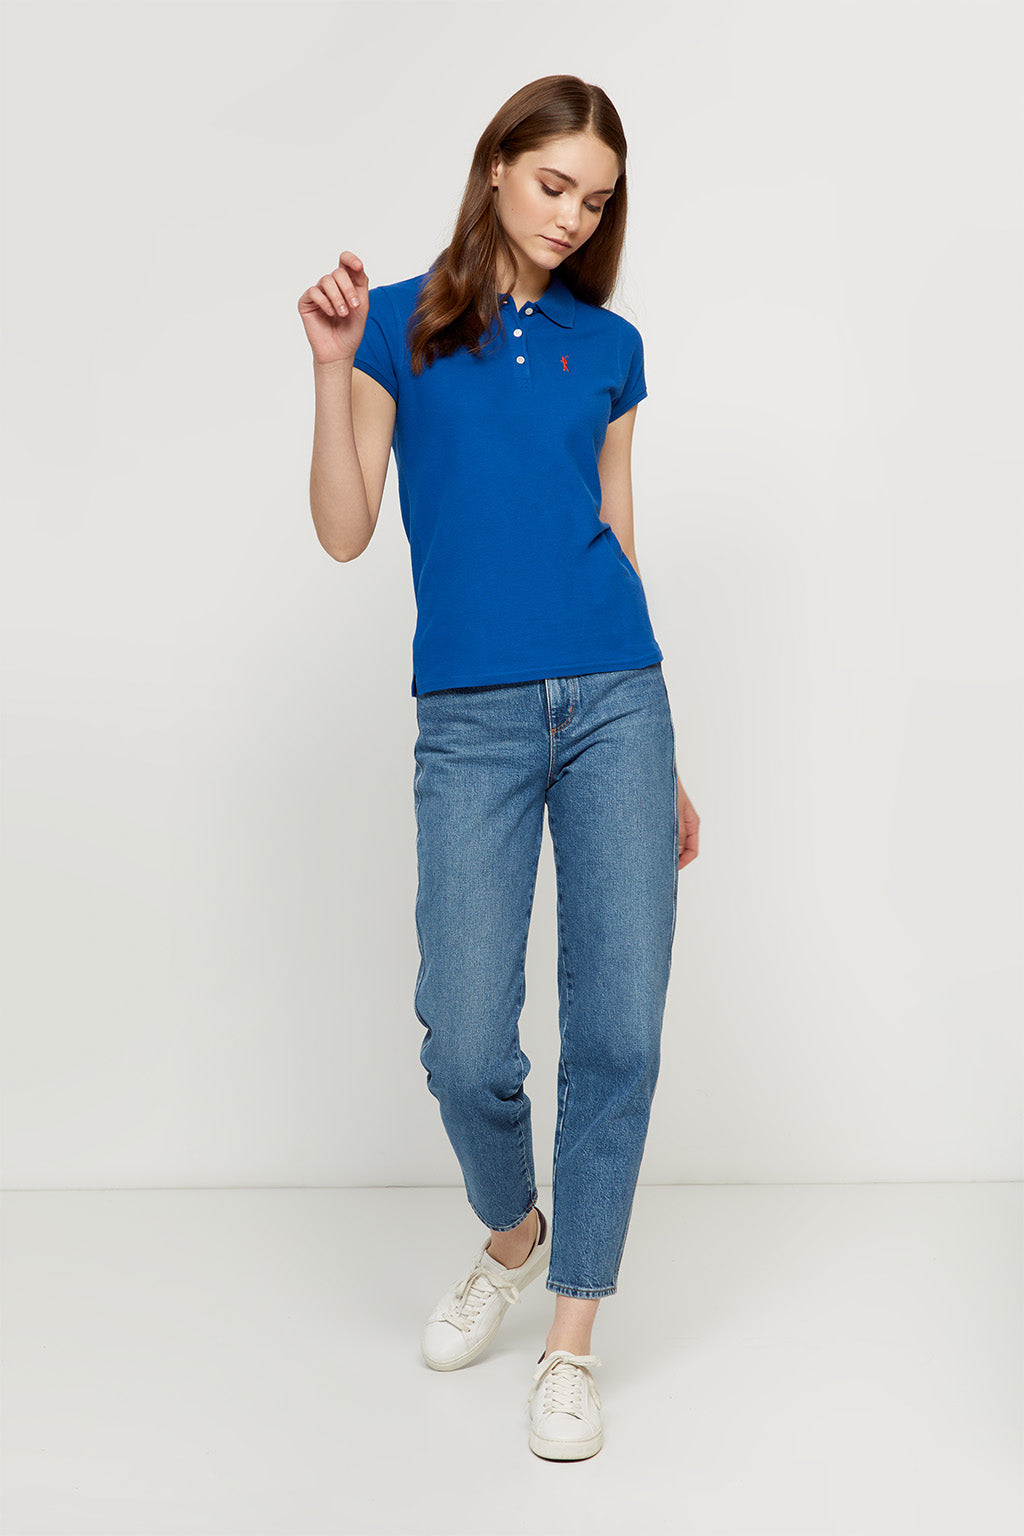 Royal blue polo shirt with embroidered logo